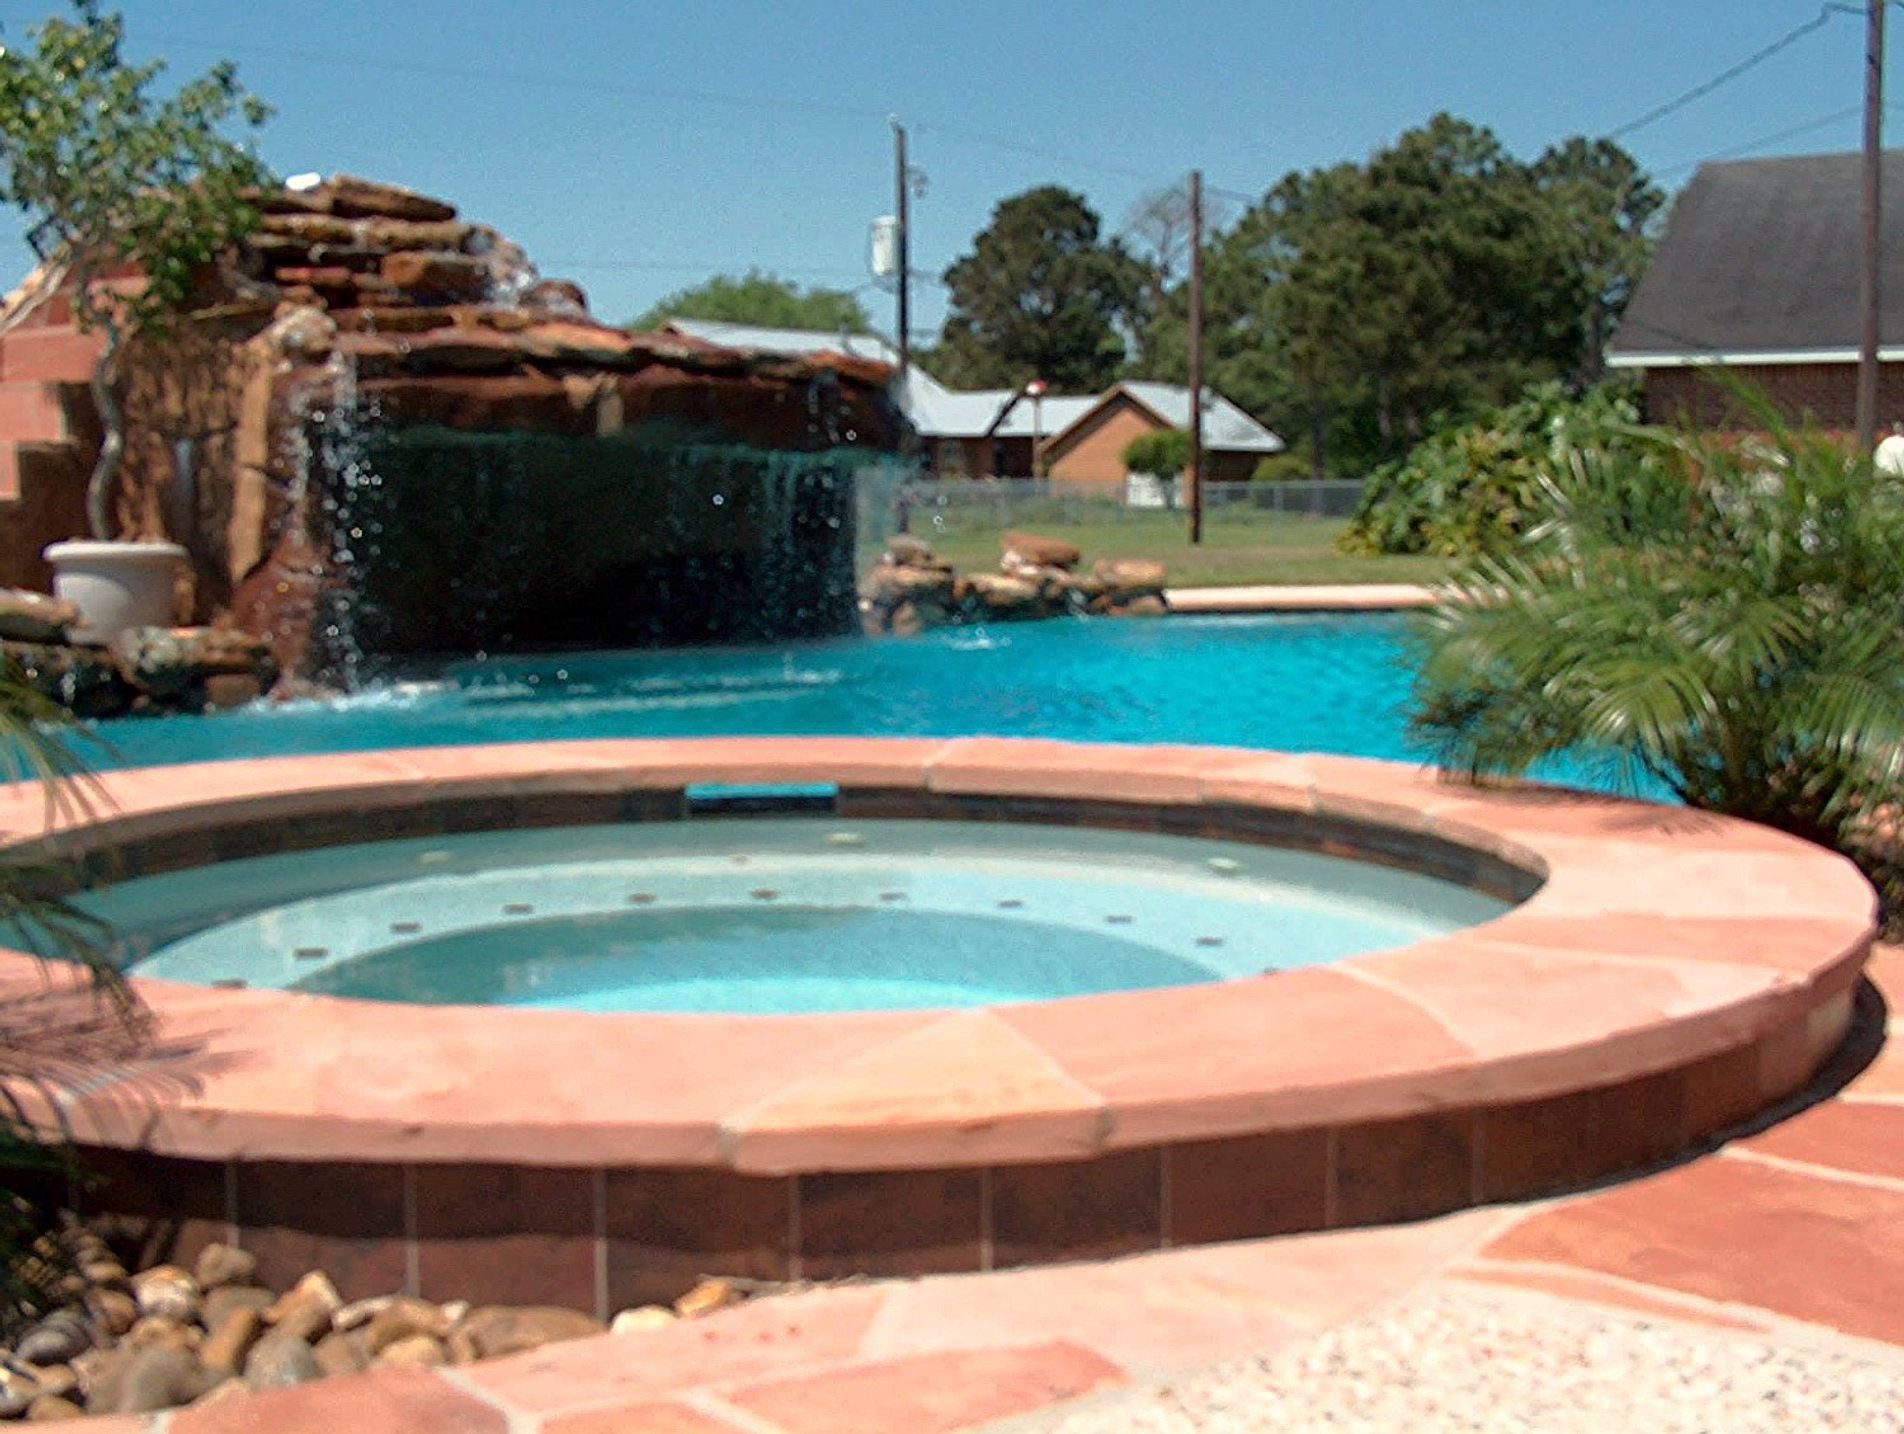 Riviera custom pool builder clear lake tx for Custom pool builder